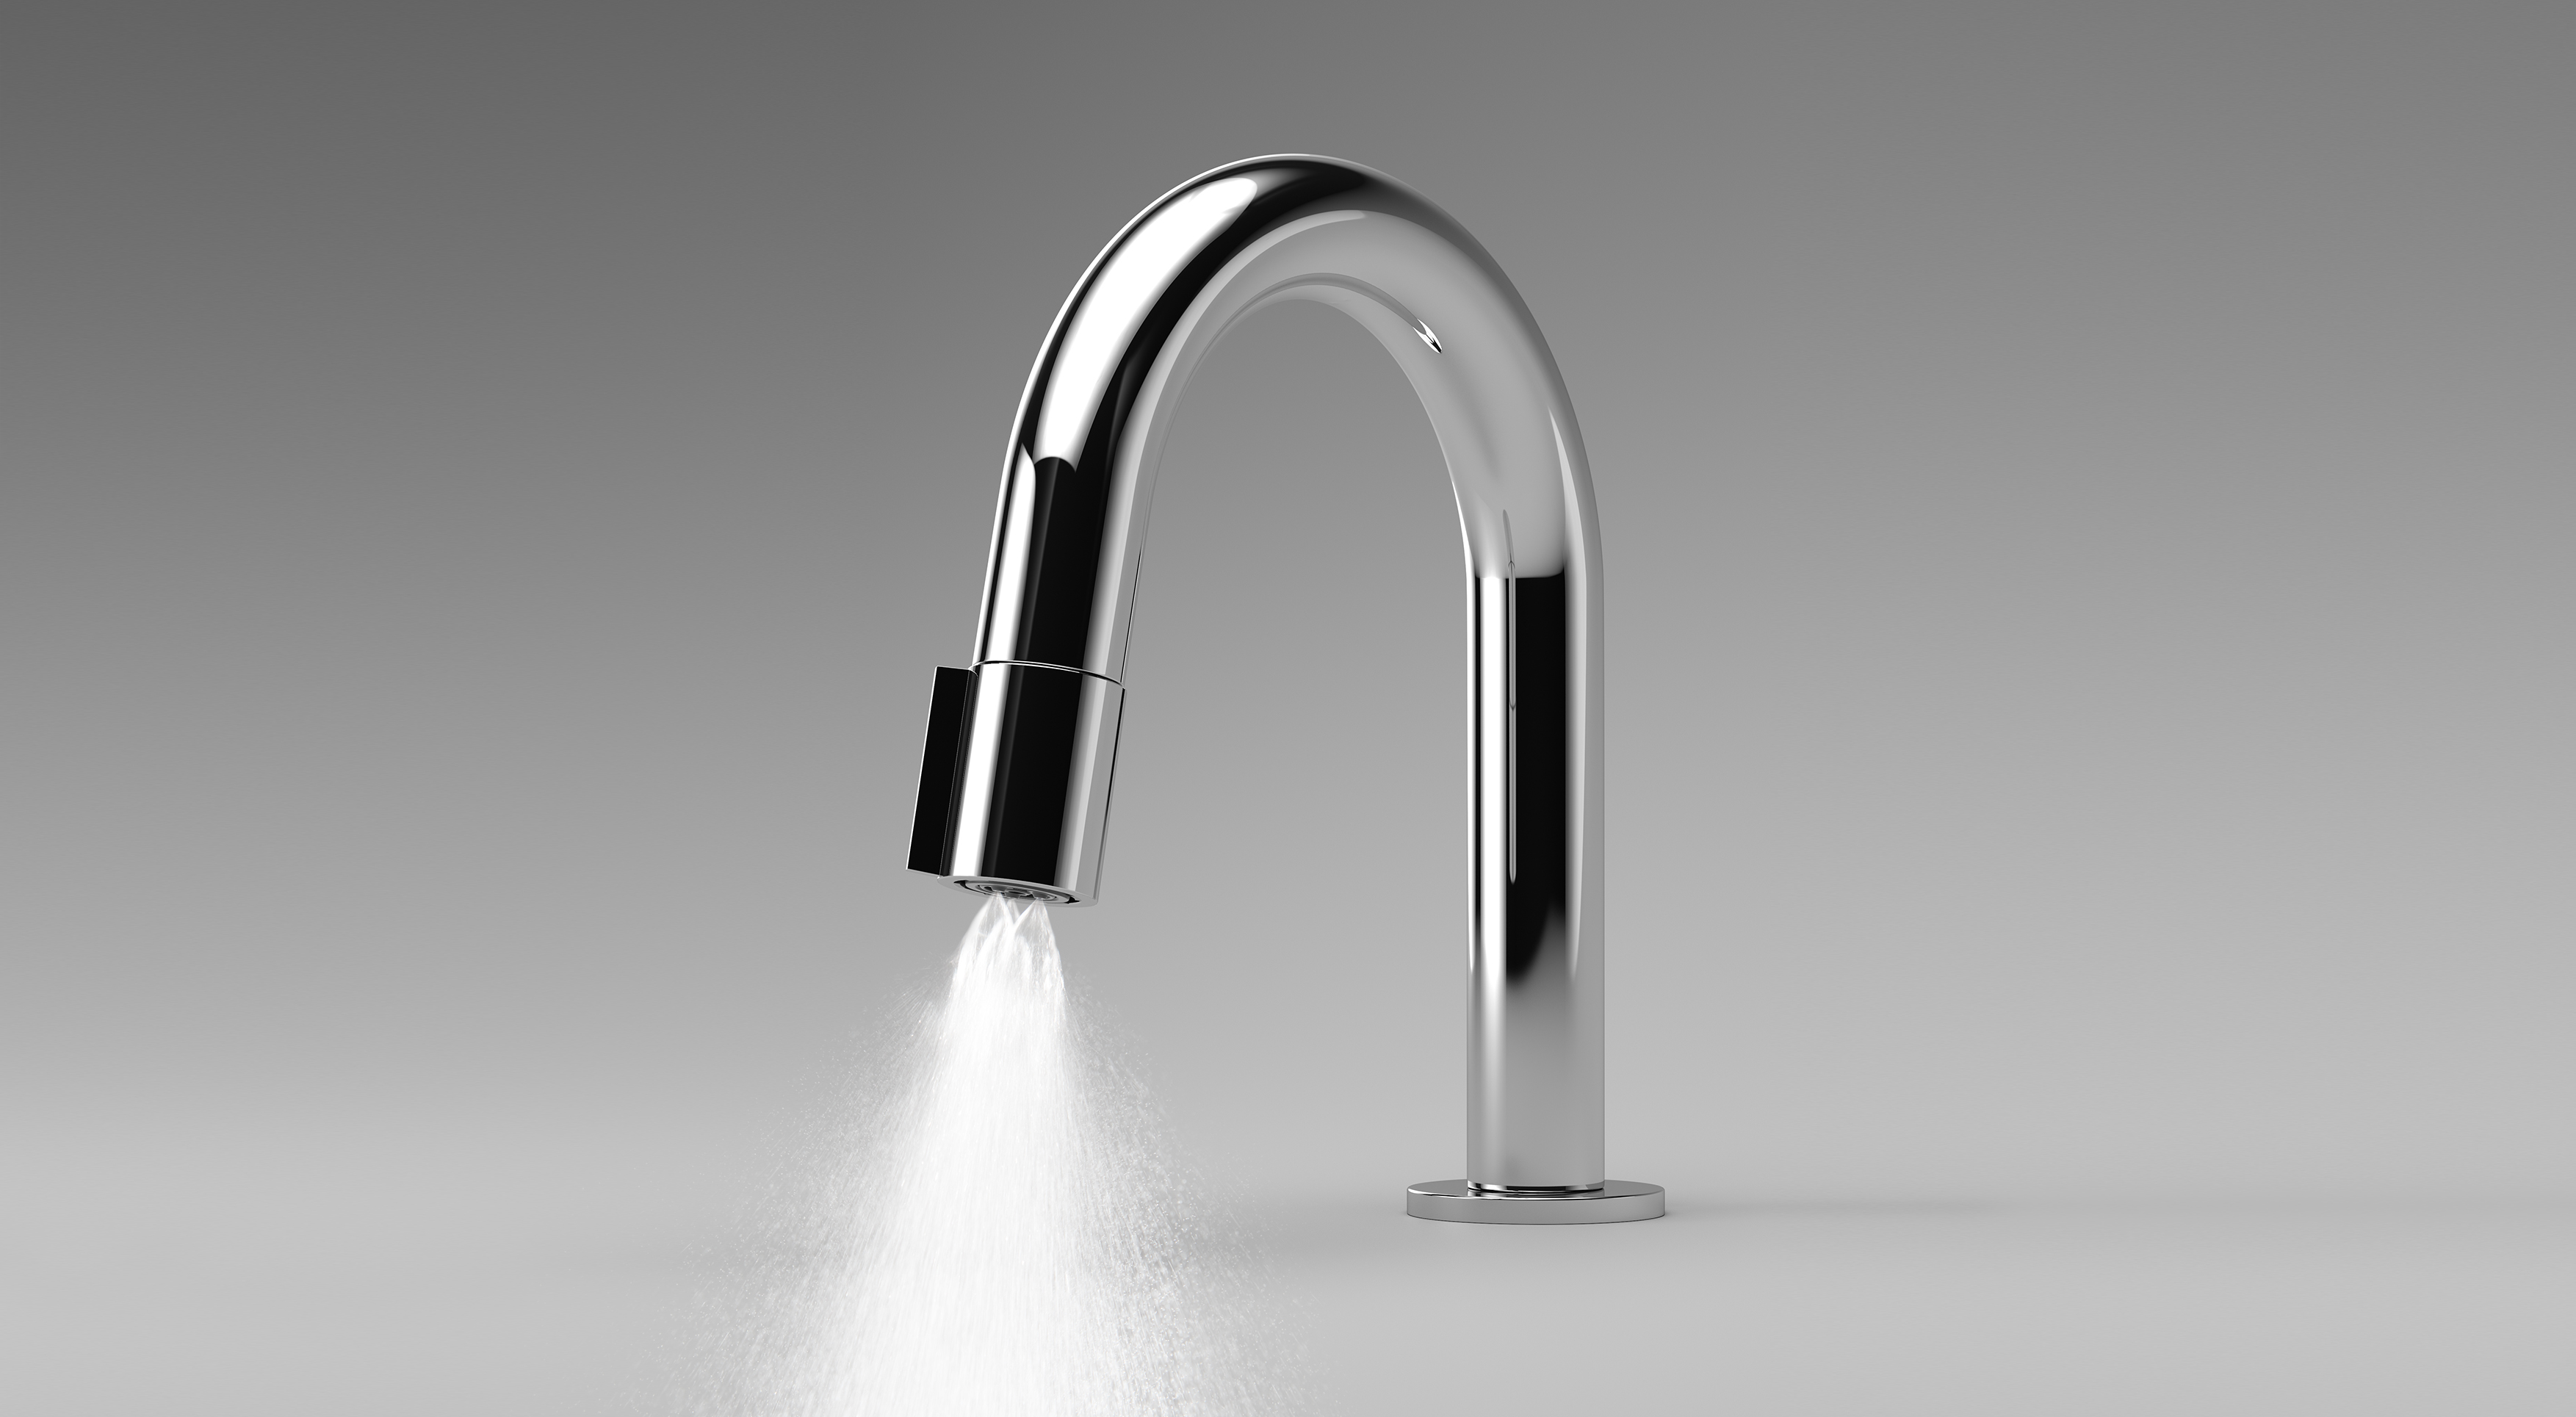 Swiss Eco Tap Design Jet